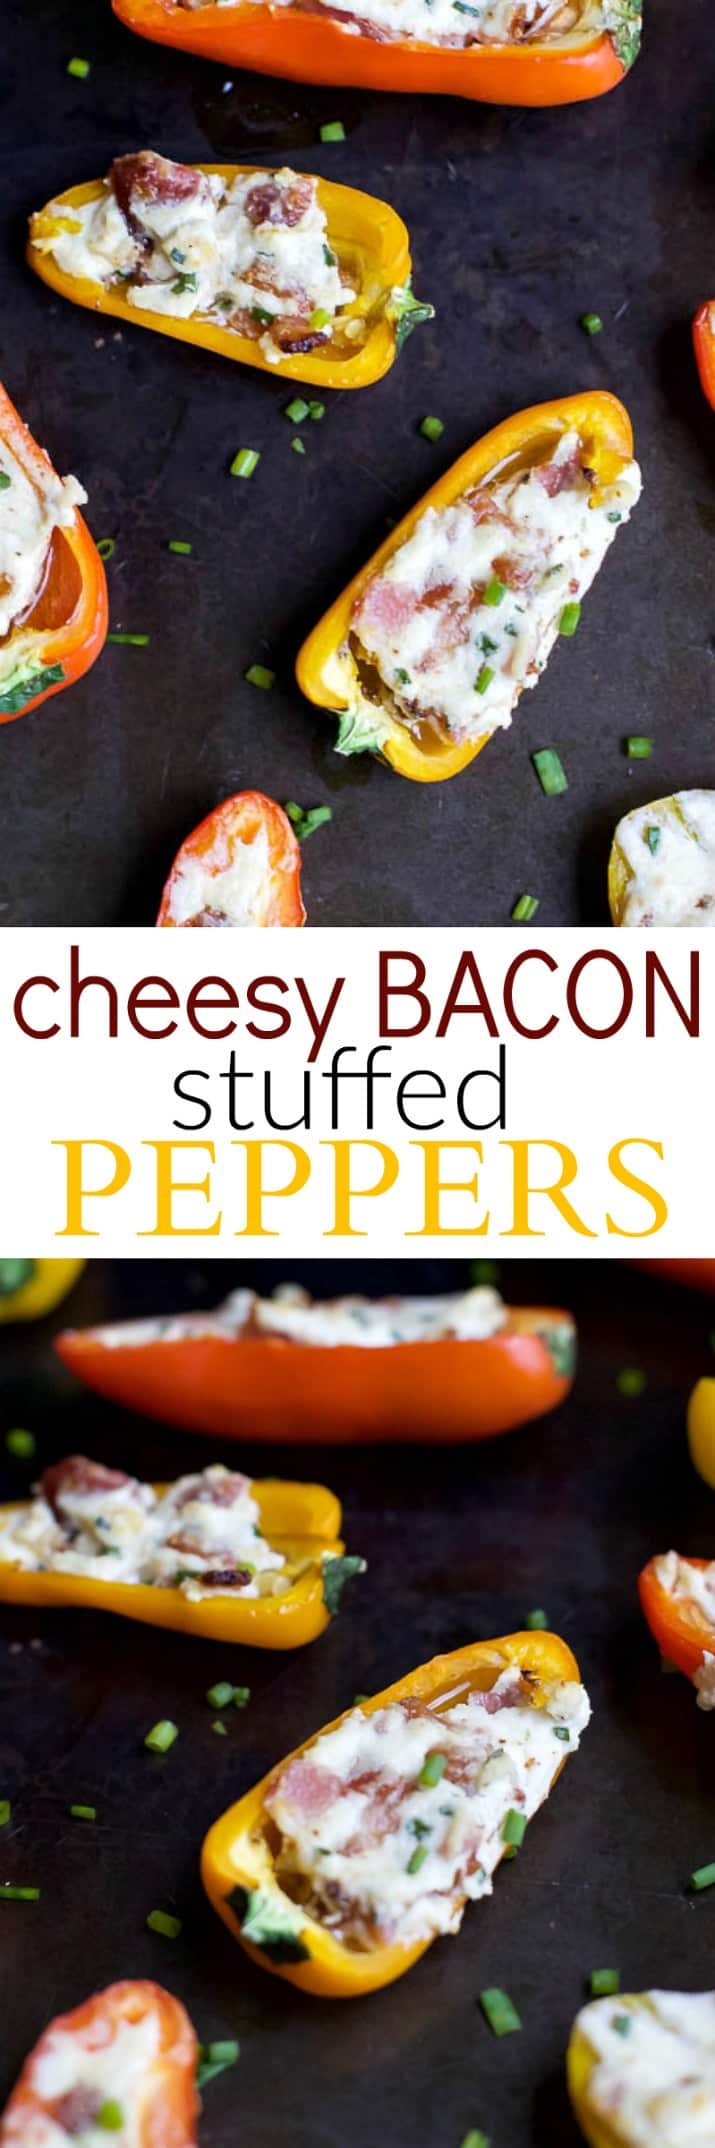 Cheesy Bacon Stuffed Peppers made with mini bell pepper halves